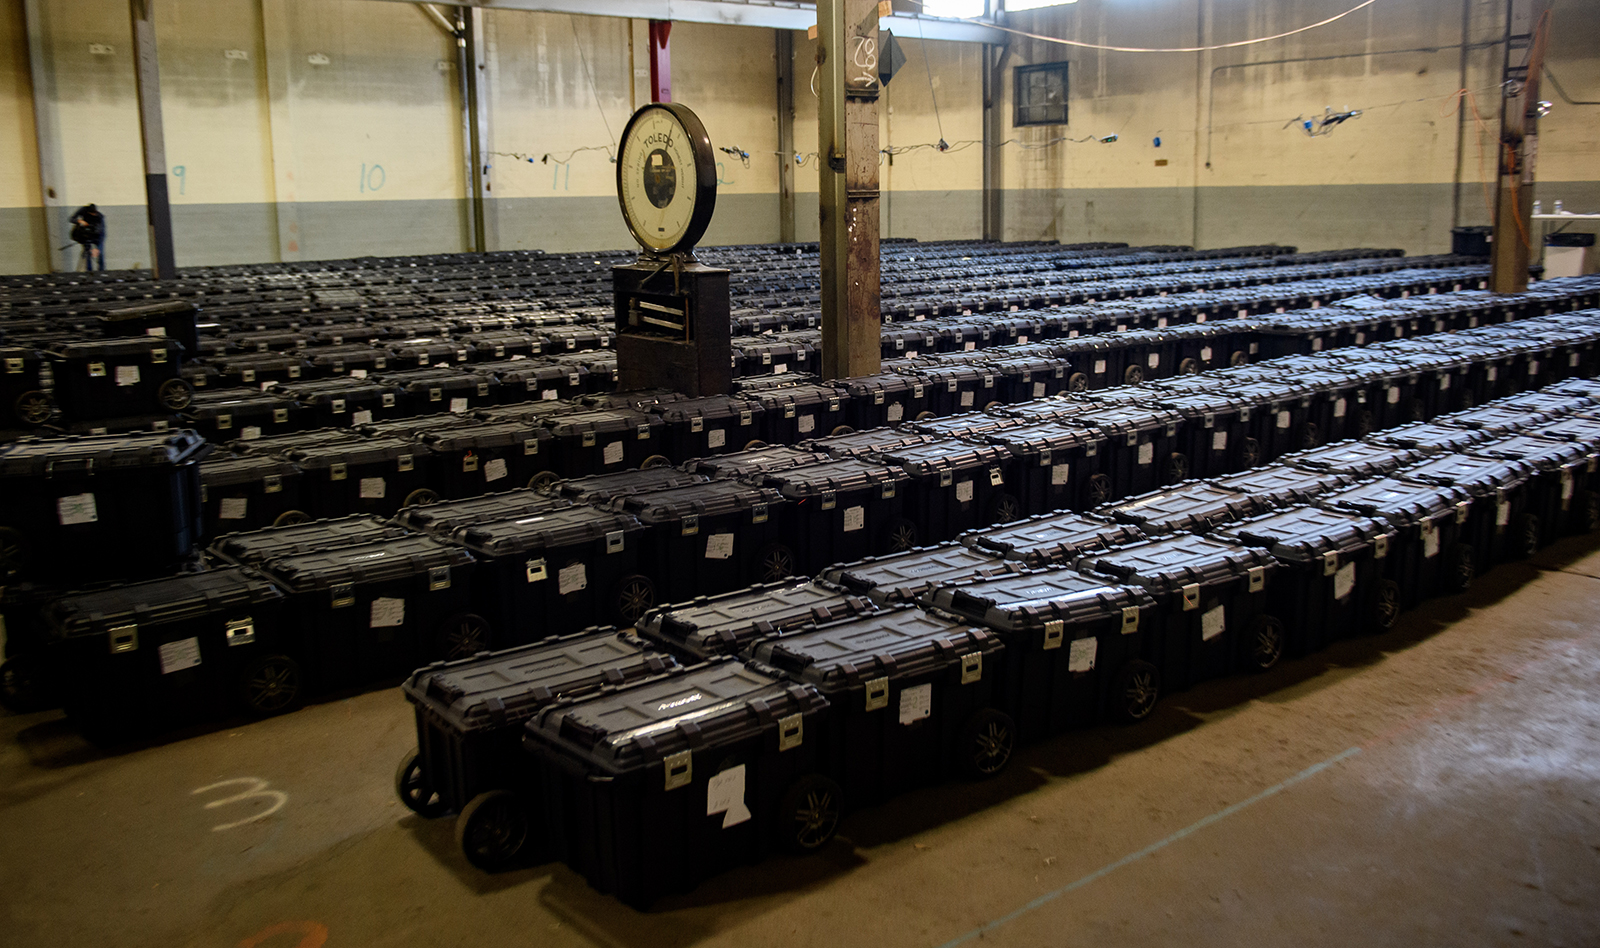 Election precinct suitcases containing ballots, election materials and keys to voting machines are held under guard by the Allegheny County Police at the Allegheny County elections warehouse in Pittsburgh, Pennsylvania, on November 4.